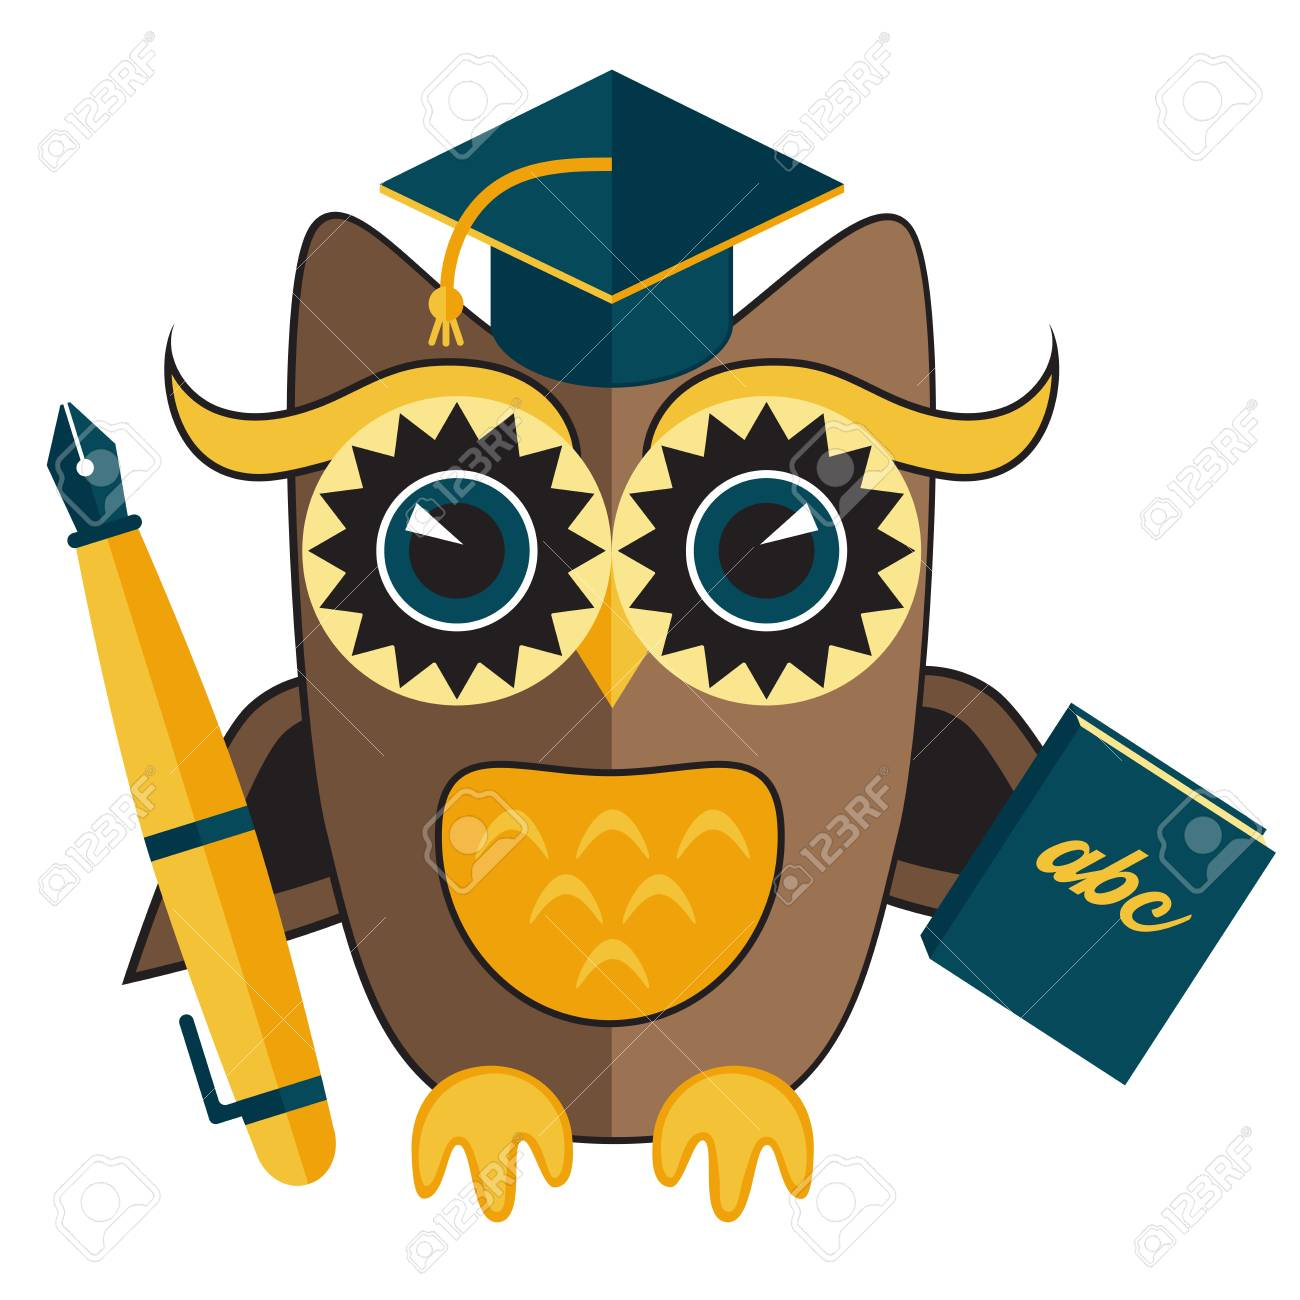 Owl Teacher Character With Pen And Book Design Royalty Free Cliparts